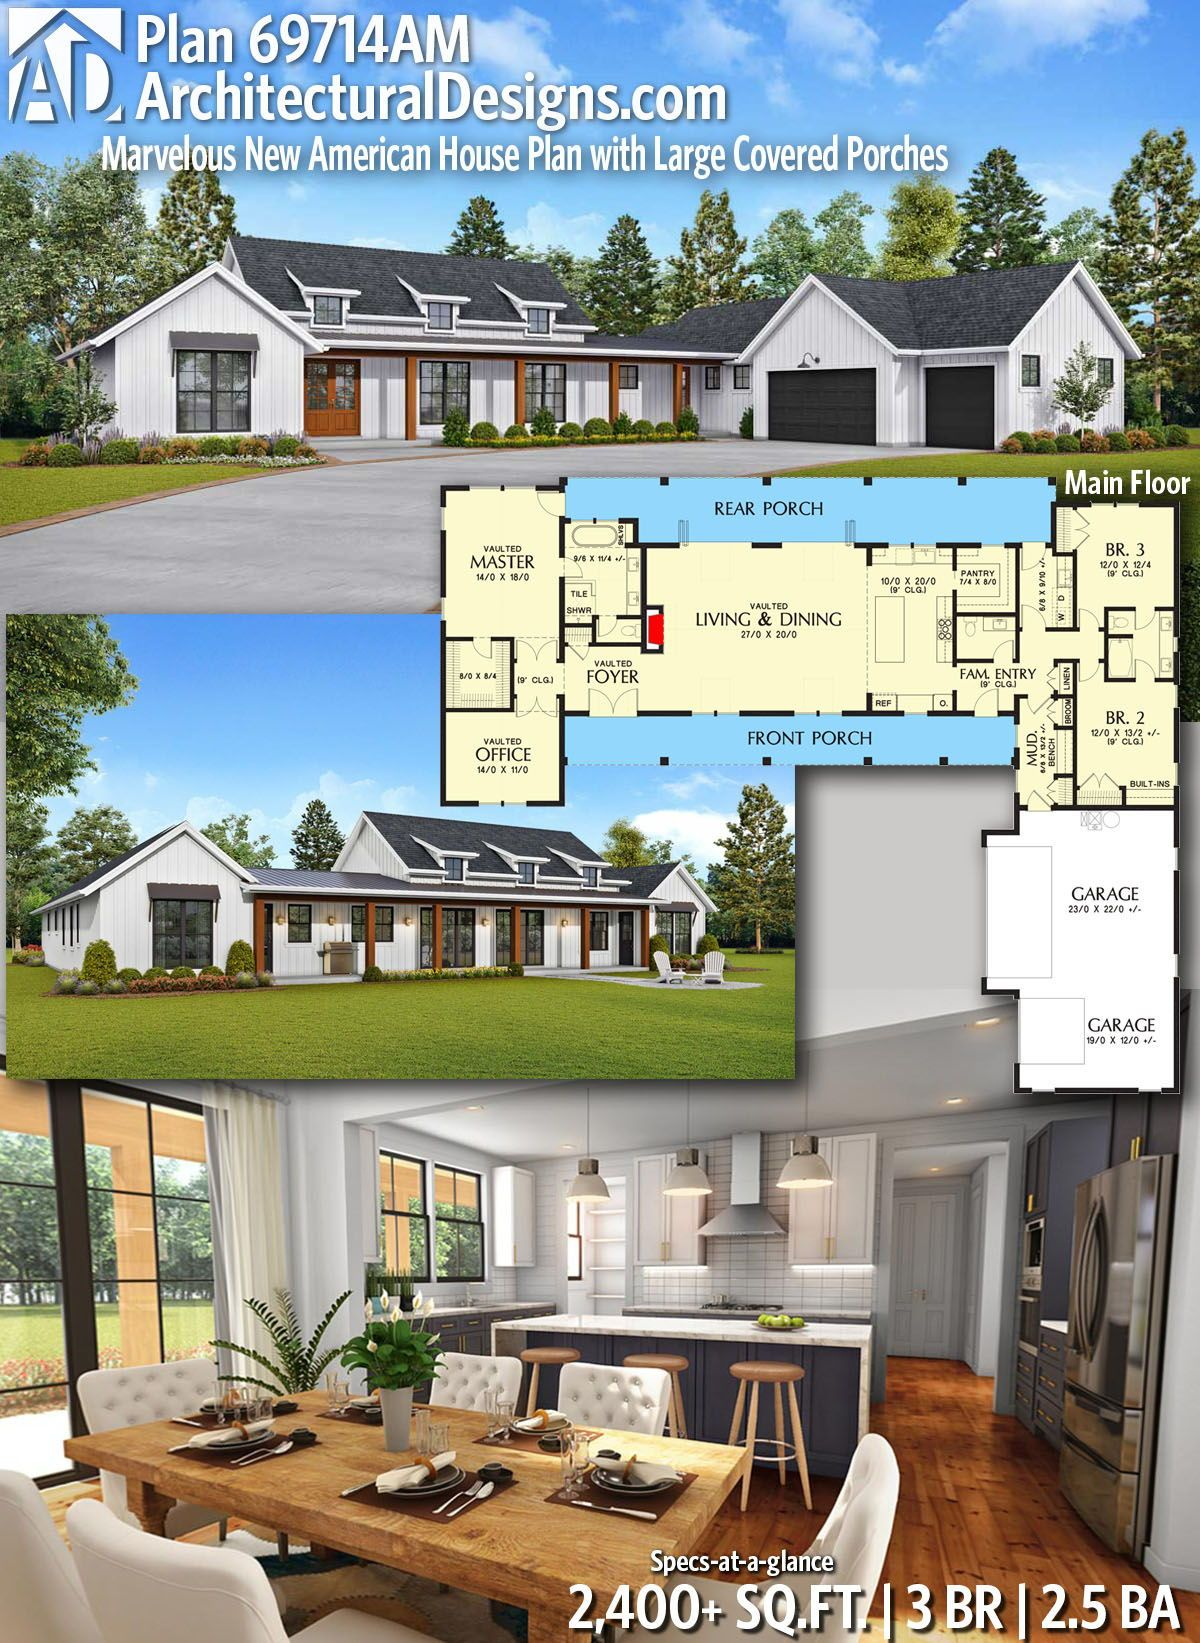 Plan 69714am Marvelous New American House Plan With Large Covered Porches House Plans Farmhouse Plans New House Plans